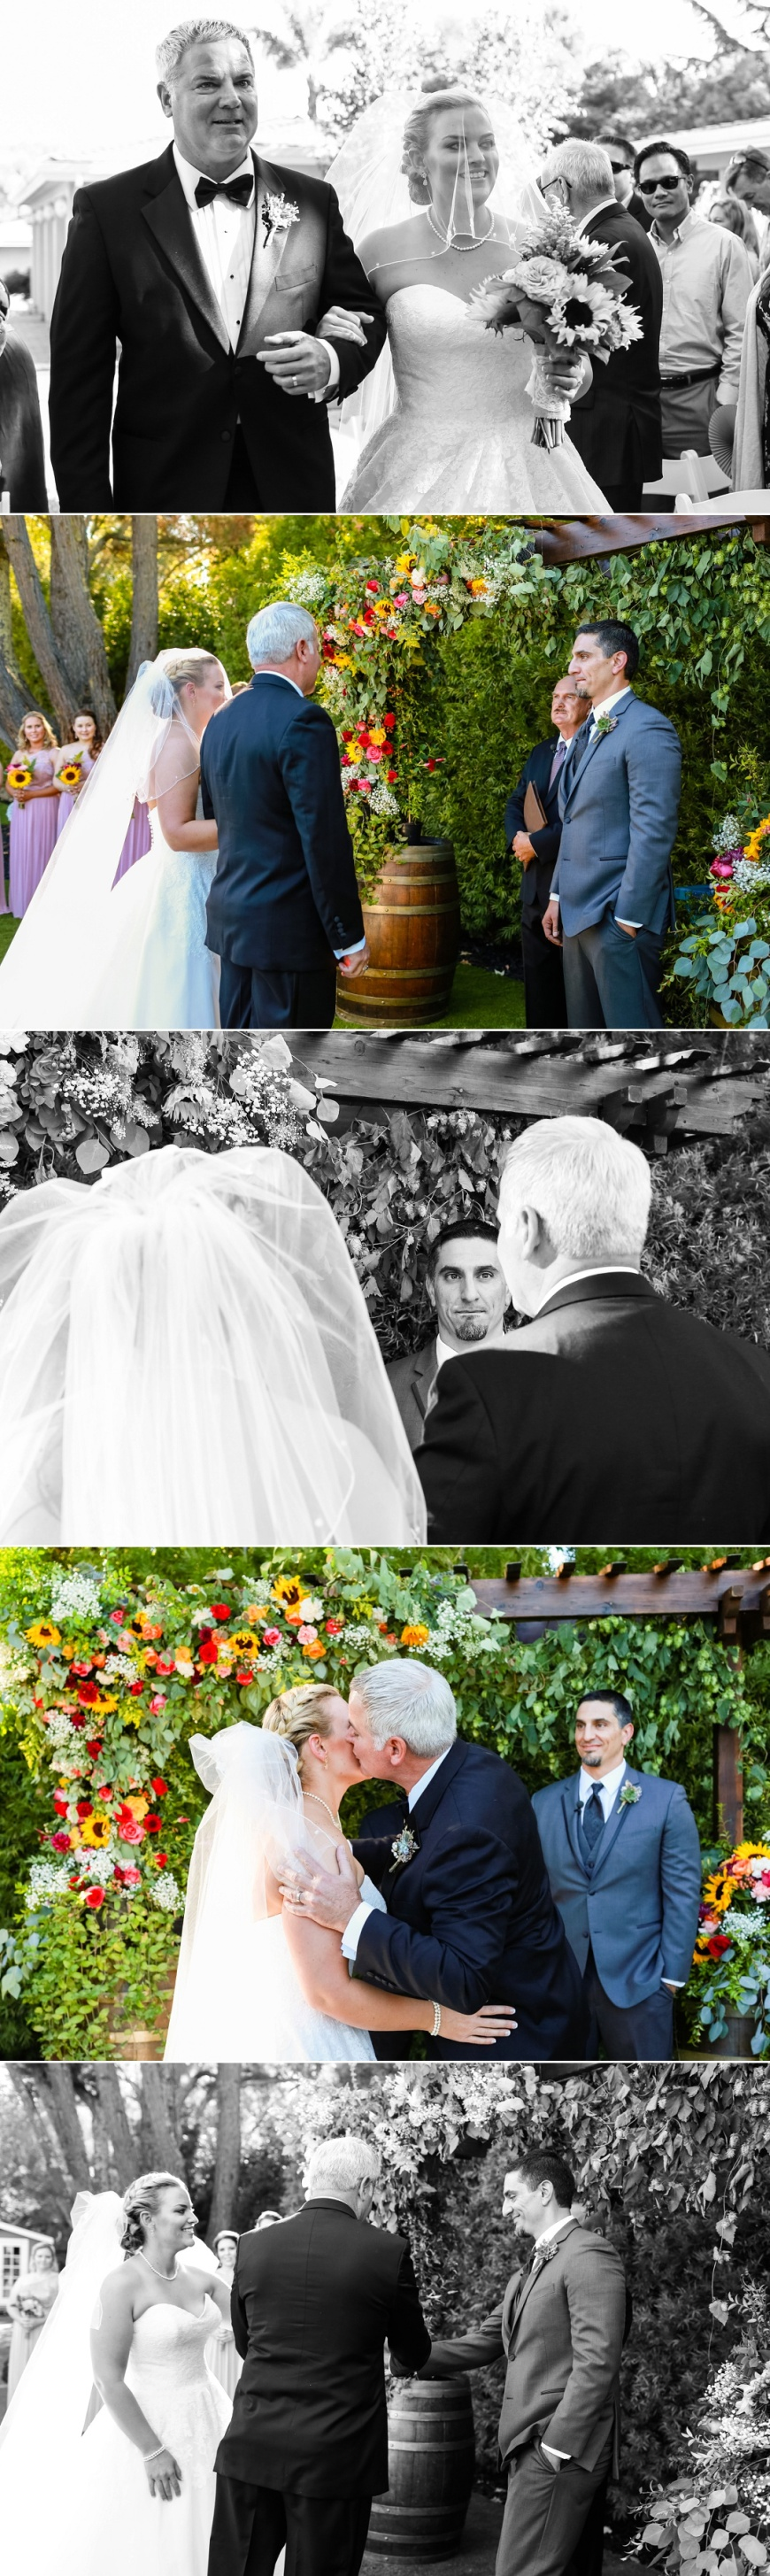 Monte-Sereno-Wedding-Photographer_1047.jpg